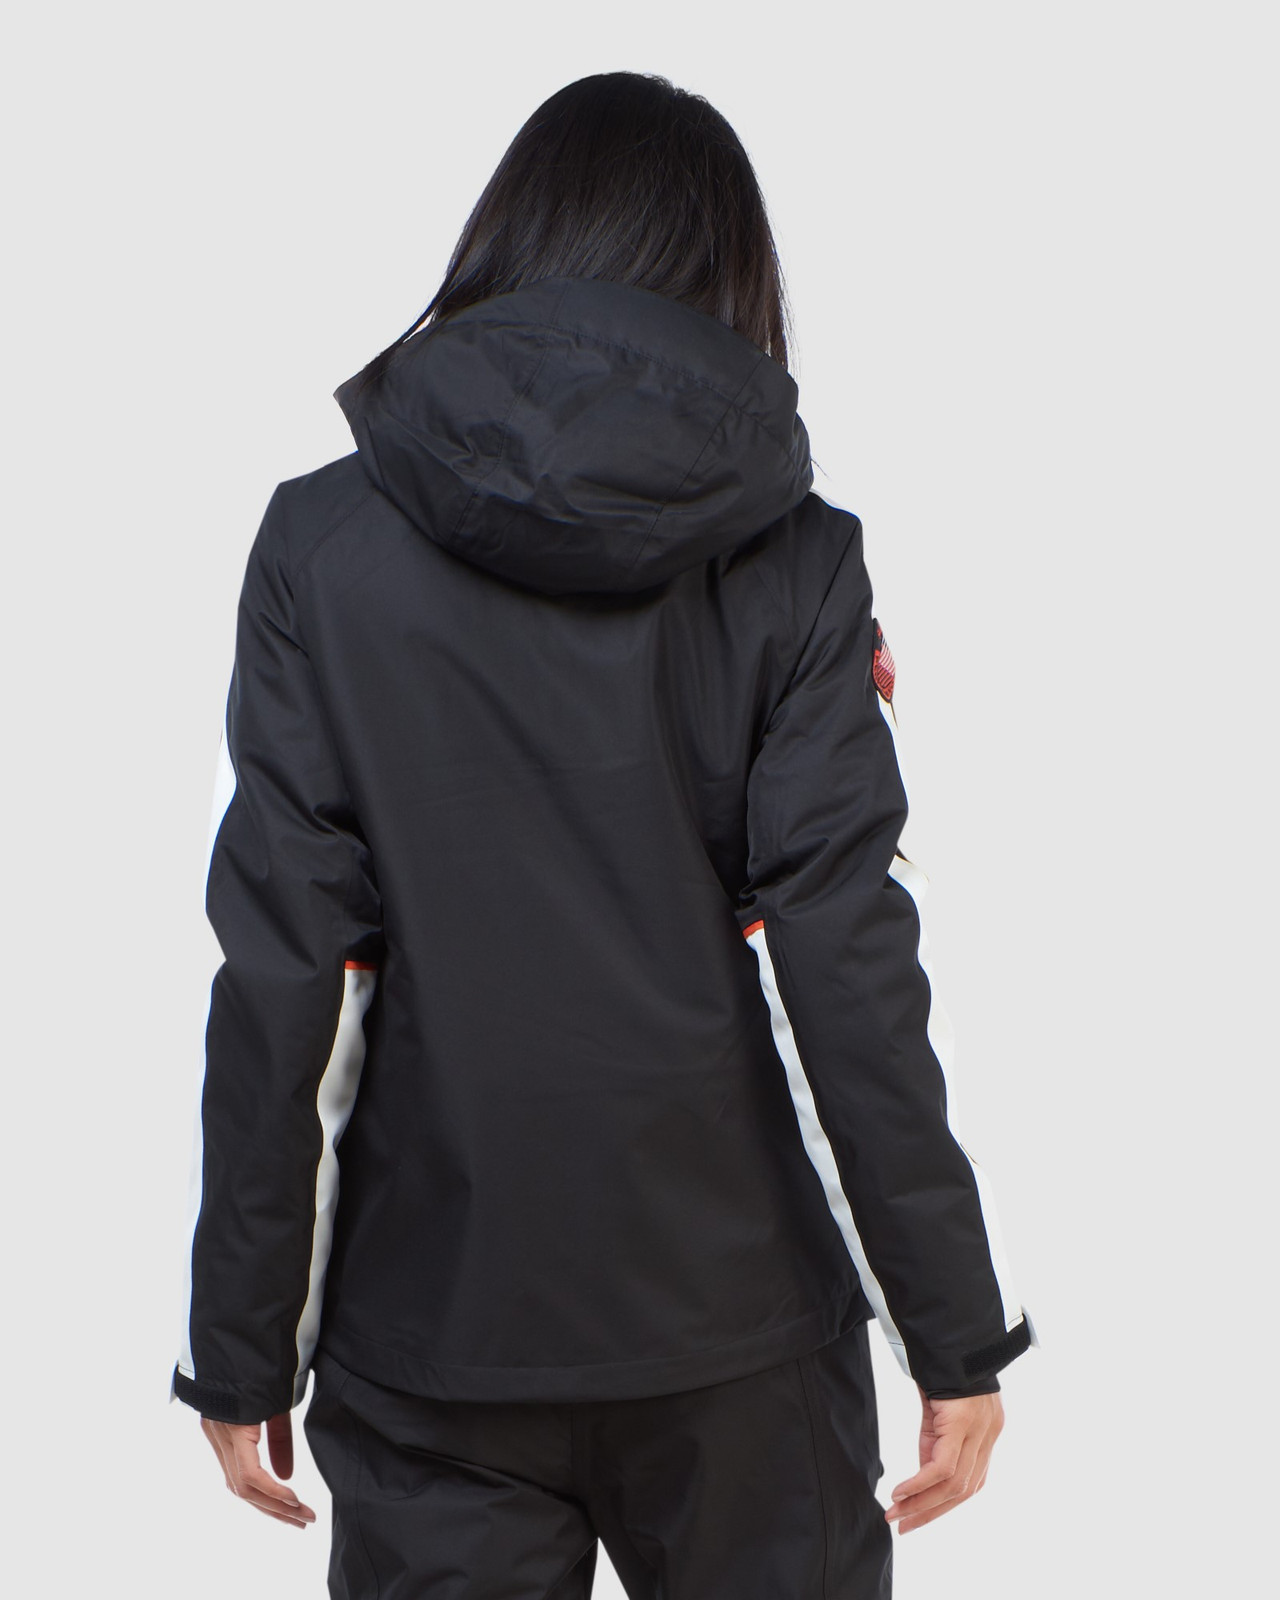 Superdry Womens FREESTYLE ATTACK JACKET Black Snow Jackets 4